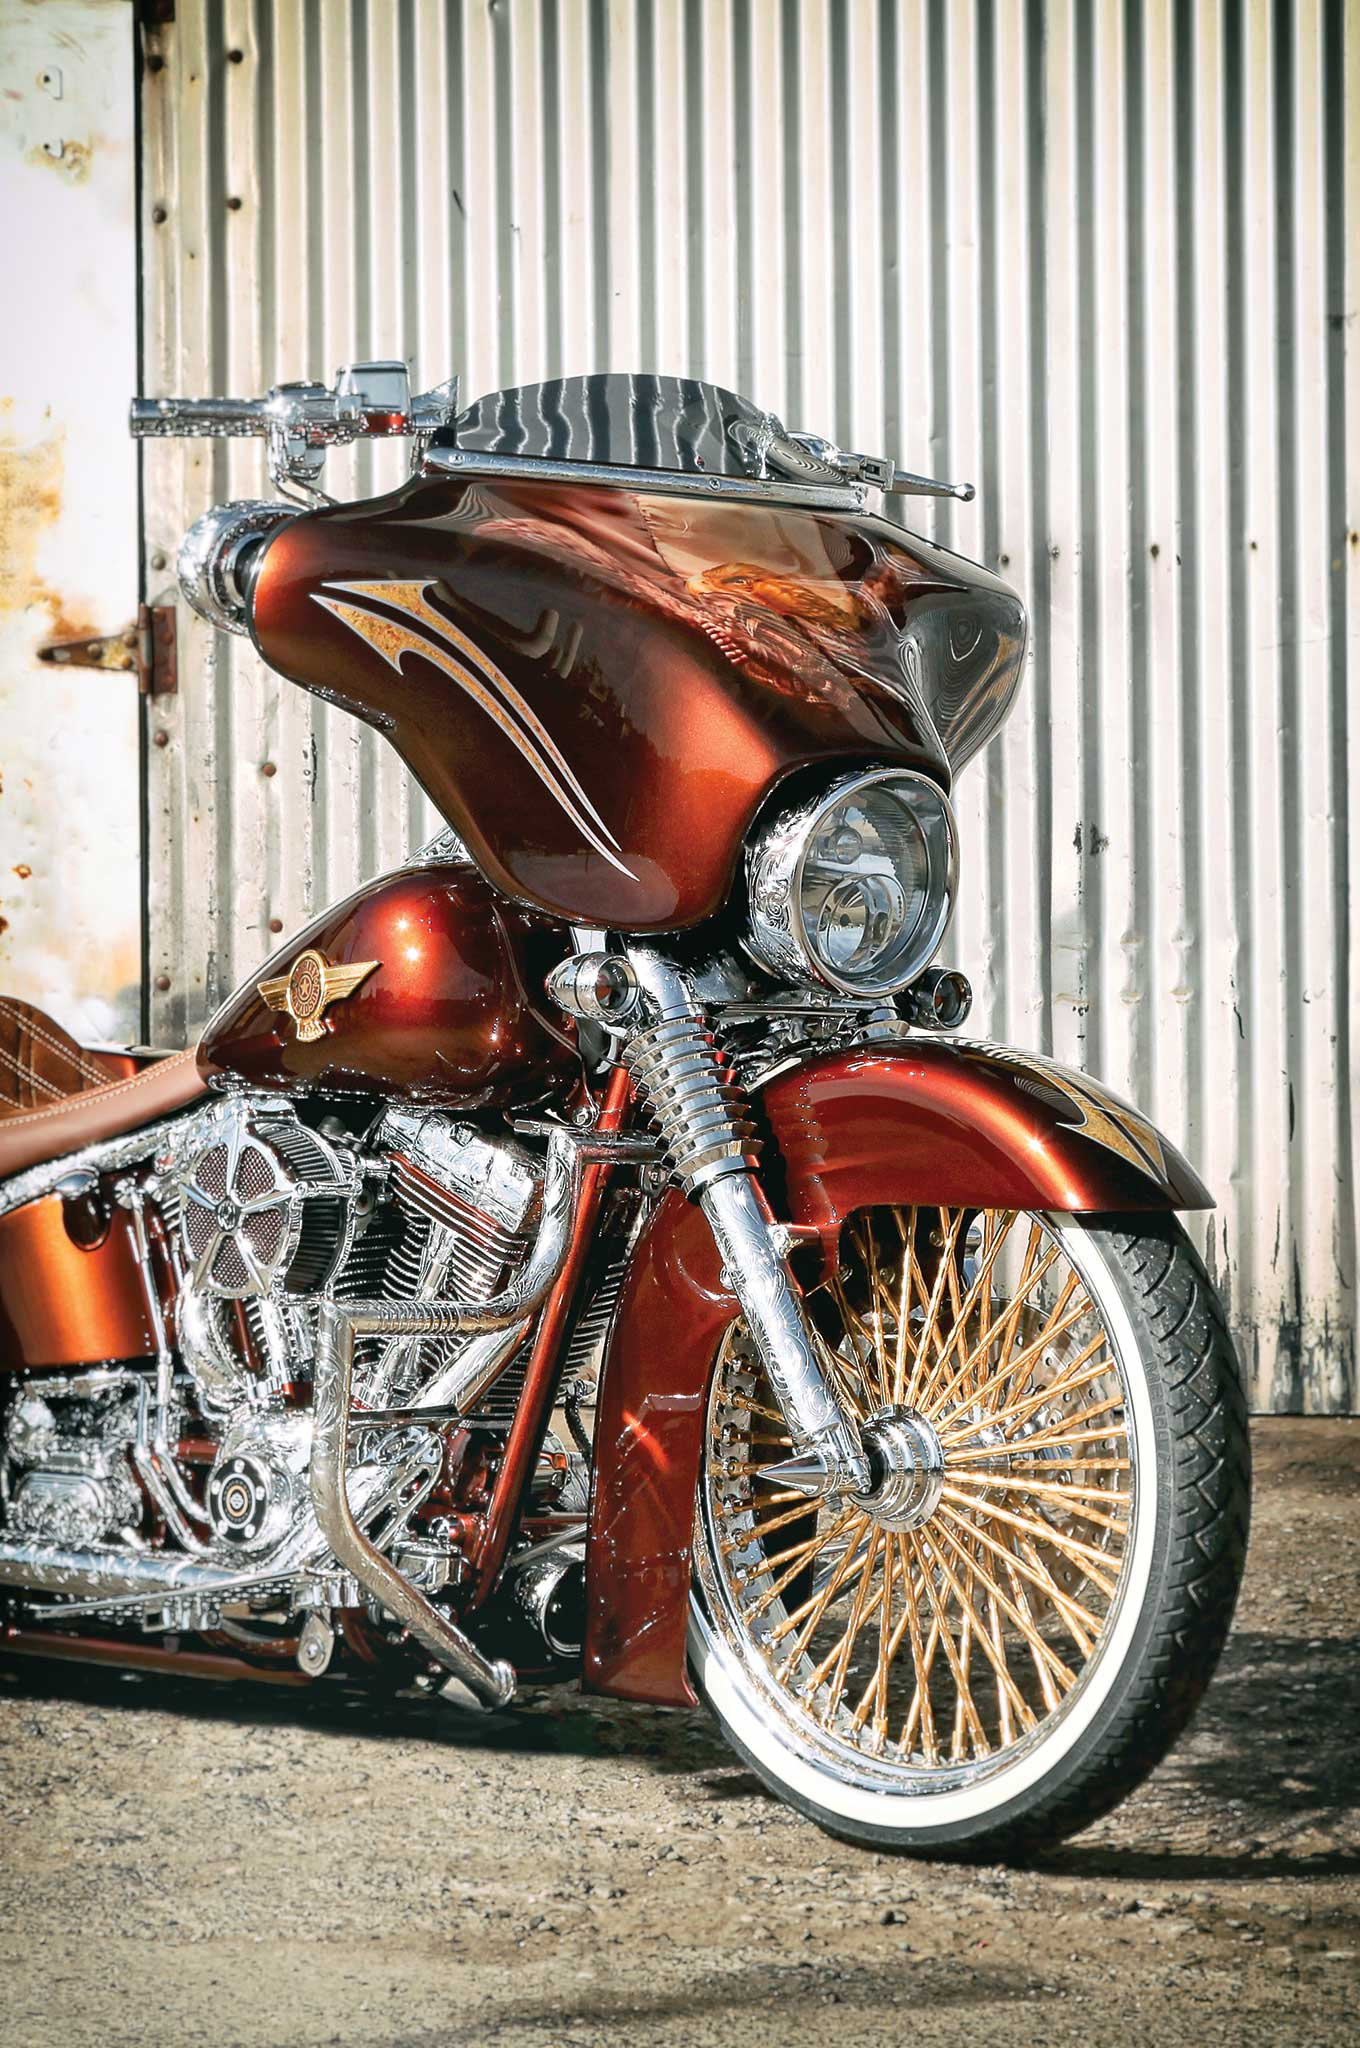 2005 Harley-davidson Fat Boy - Heritage With Style